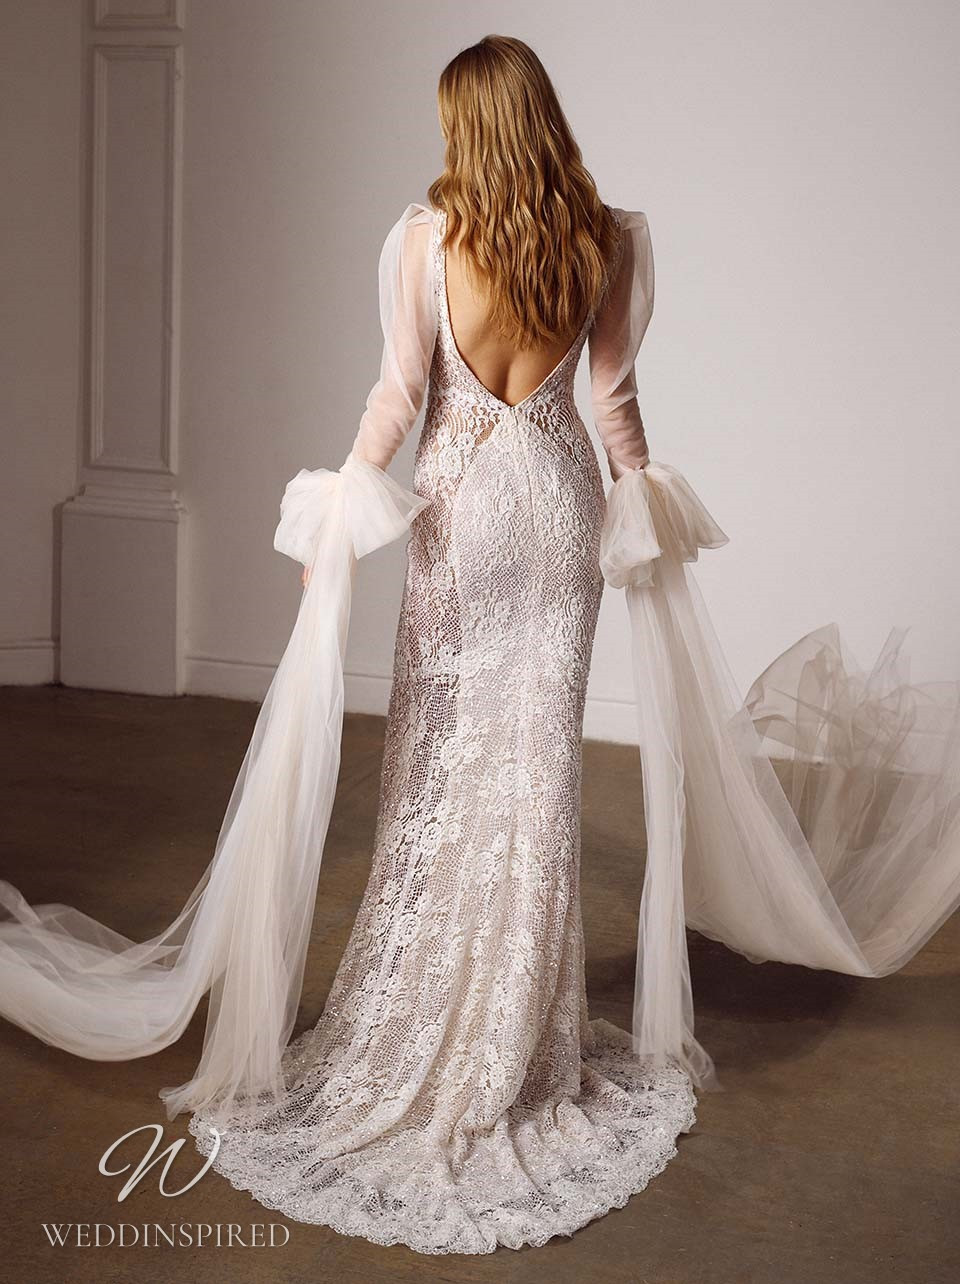 A Galia Lahav 2022 lace mermaid wedding dress with a low back and long sleeves